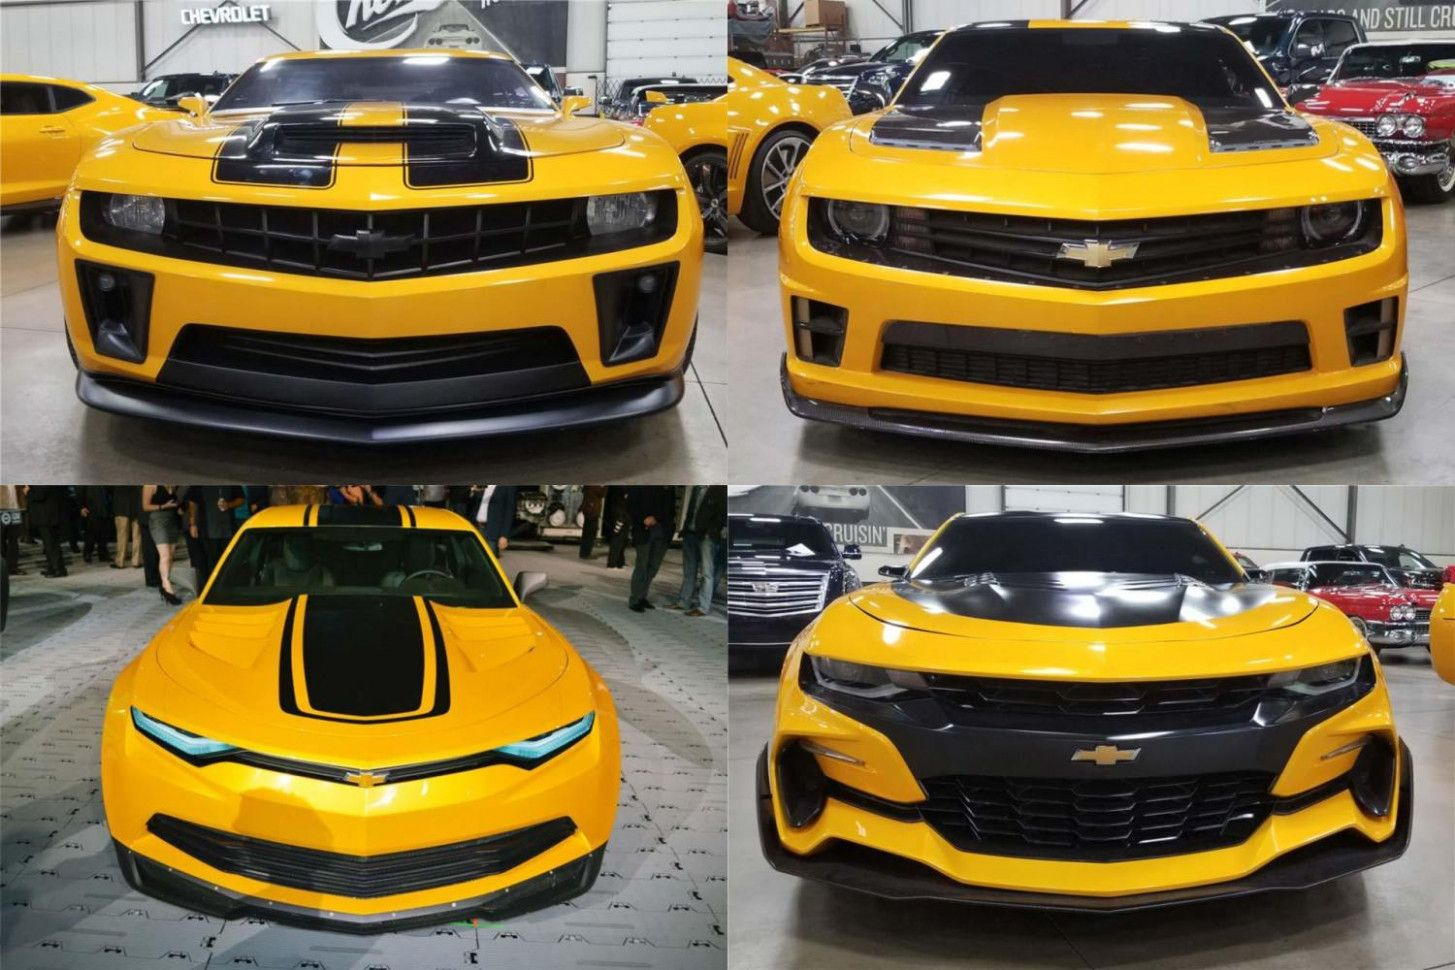 Reasons Why Bumblebee Camaro Is Getting More Popular In The Past Decade Bumblebee Camaro Https Ift Tt 2w8xtrr Mobil